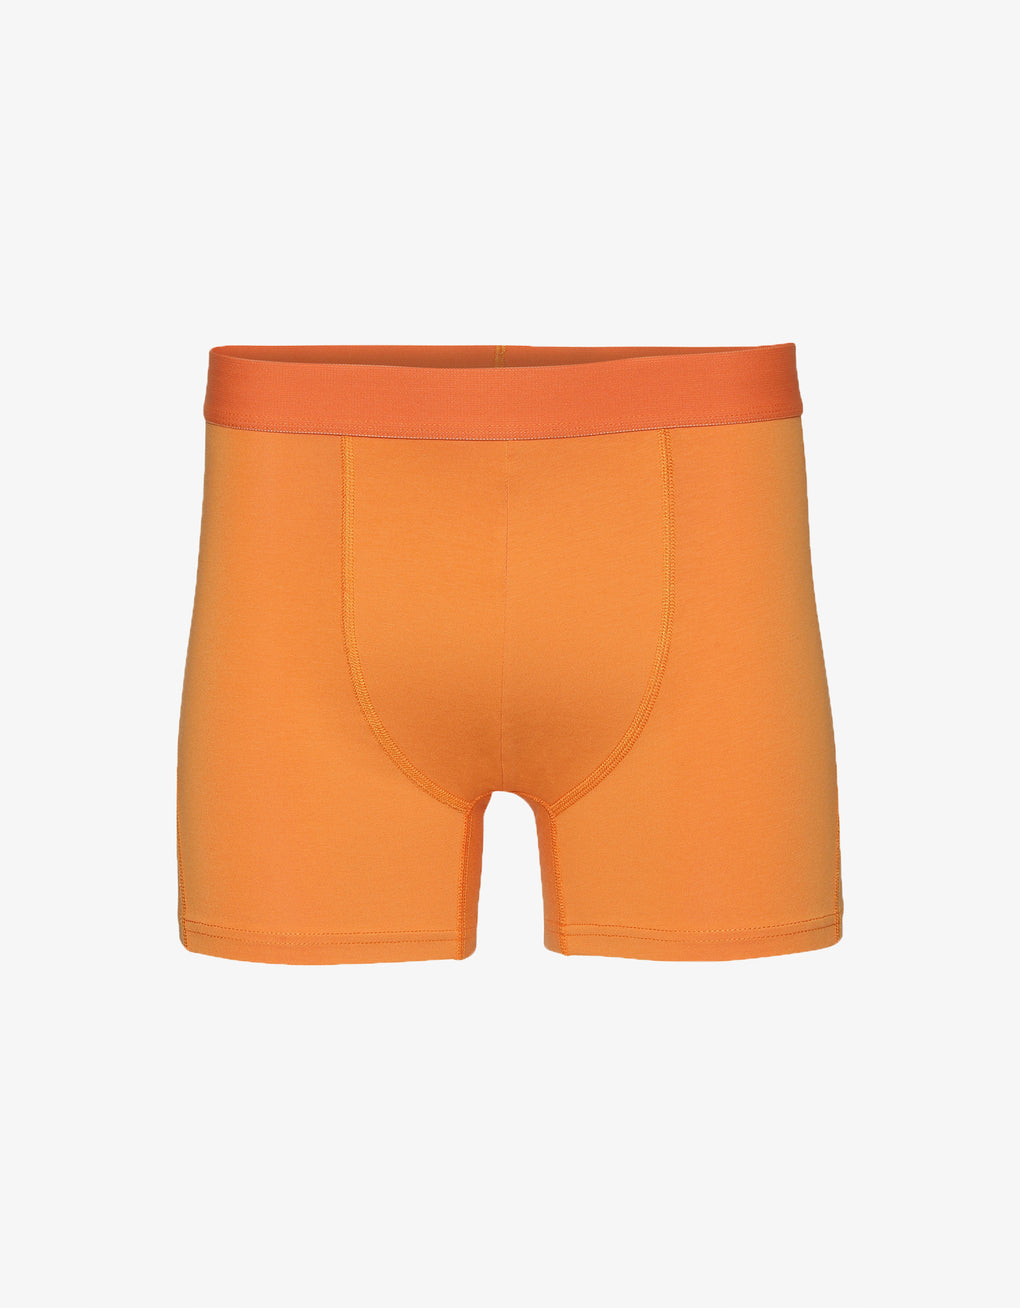 Colorful Standard Classic Organic Boxer Briefs Underwear Sunny Orange